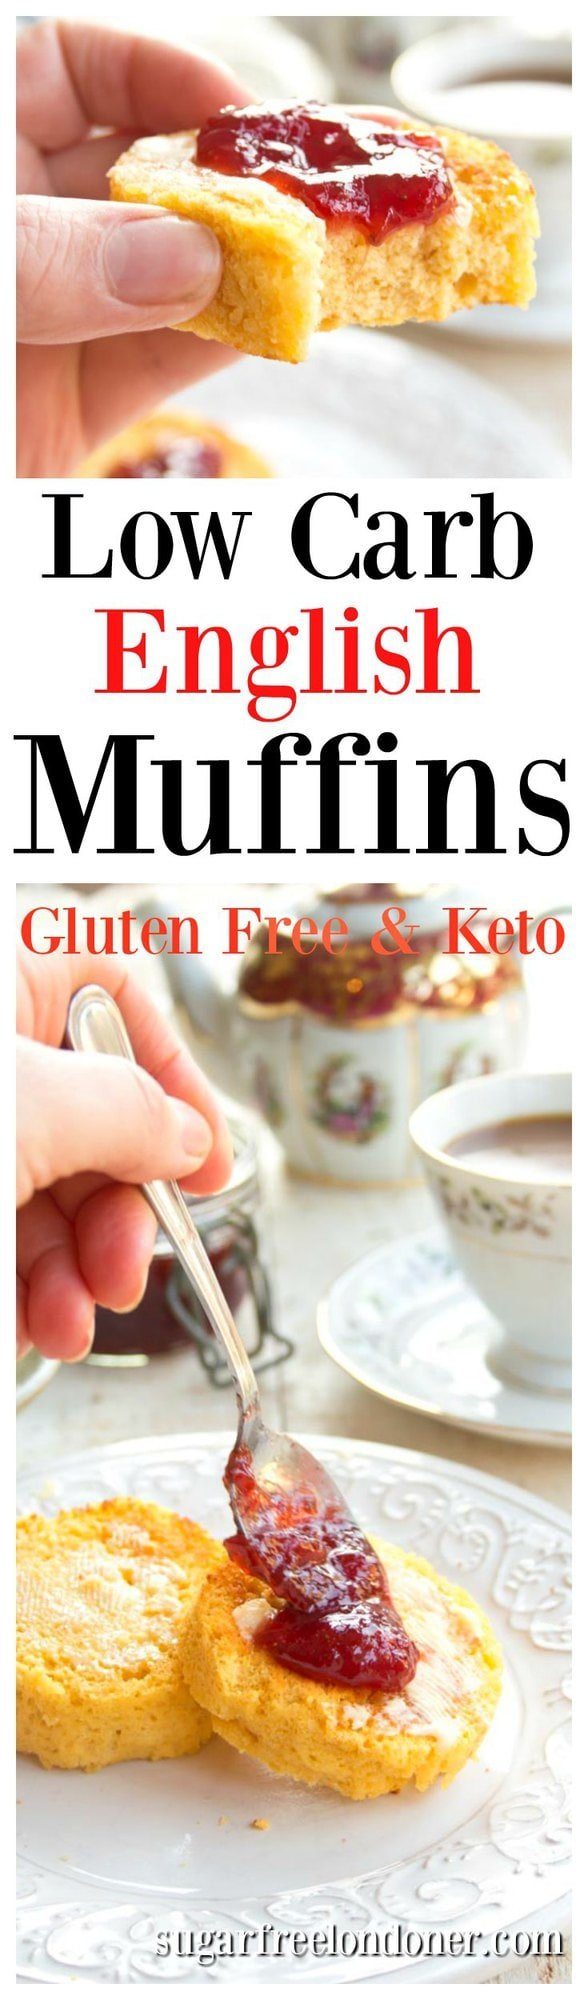 A simple, quick and delicious breakfast! It takes just 90 seconds to make these easy Keto English muffins in your microwave. They are gluten free and grain free. #ketomuffins #lowcarbmuffins